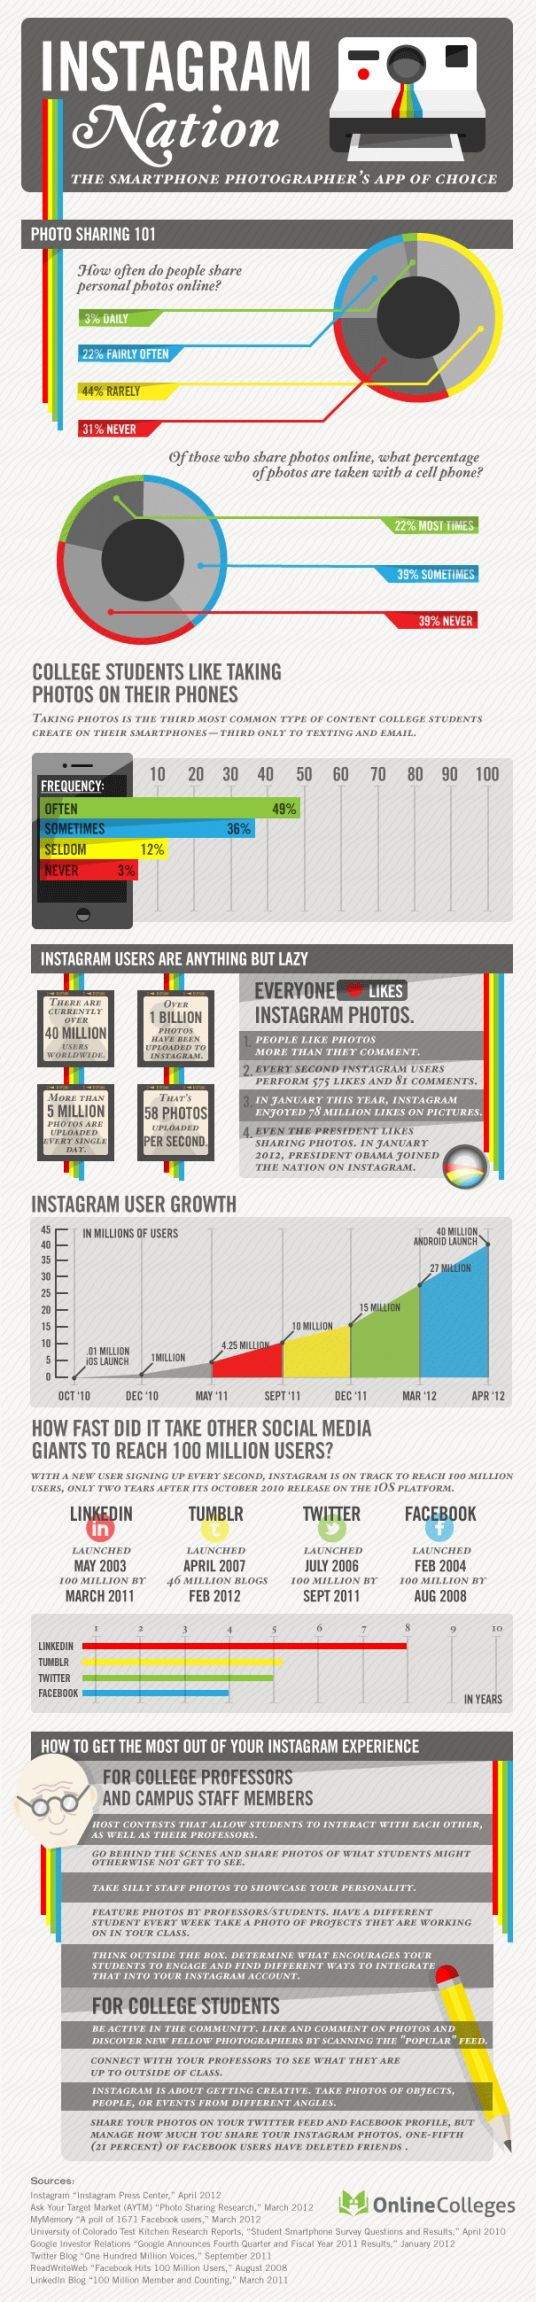 Instagram Nation Infographic